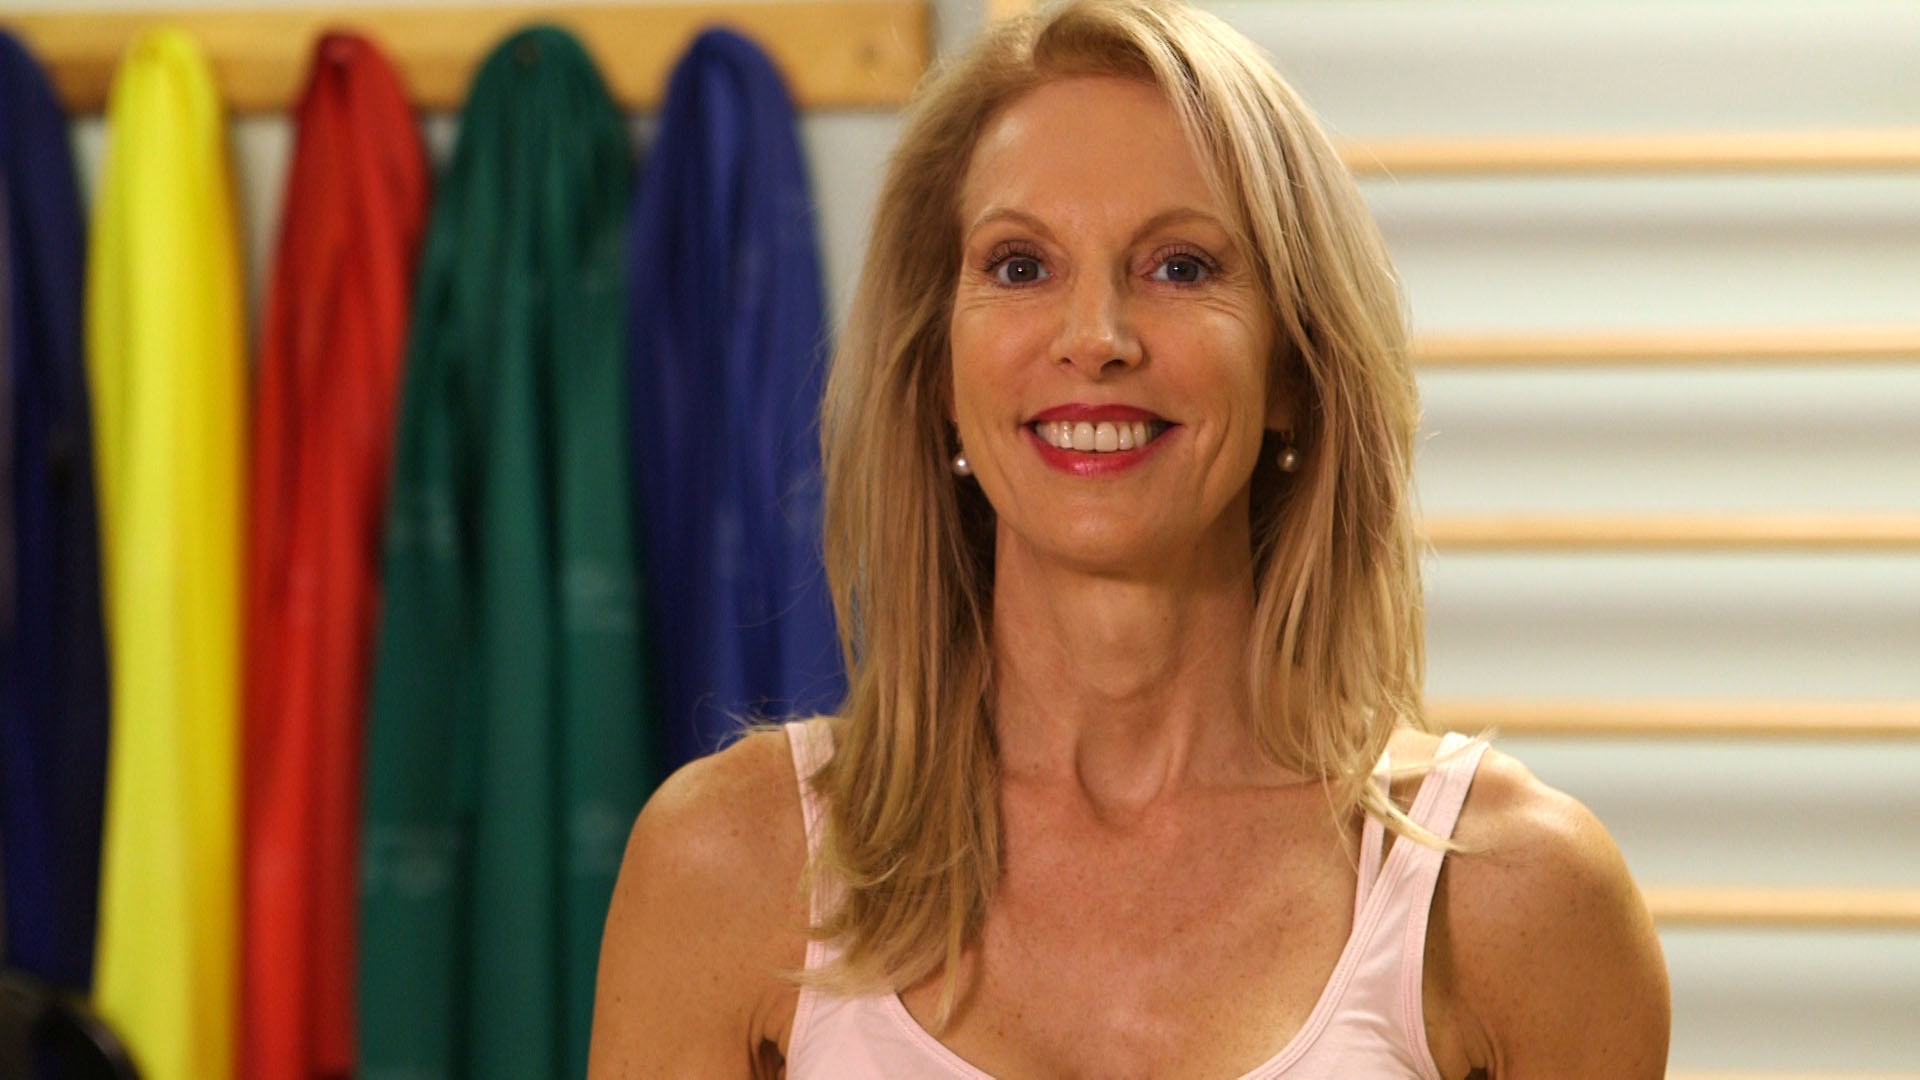 Hi! My name is Barbara. - Barbara has a passion for guiding people toward reaching their fitness and wellness goals . She has is certified in Barre, Pilates, TRX and Health Coaching and has been and has been teaching exercise for the last 8 years. Barbara began her health and wellness career part time in 2006 while working full time on Wall Street. She retired from her Wall Street job in 2009 which provided her the opportunity to fully engage and realize the true importance of maintaining a healthy lifestyle. She brings her vast Wall Street experience to Managed Fitness in both risk management and process re-engineering enables her design and develop unique all inclusive fitness programs that are safe, effective and measurable.